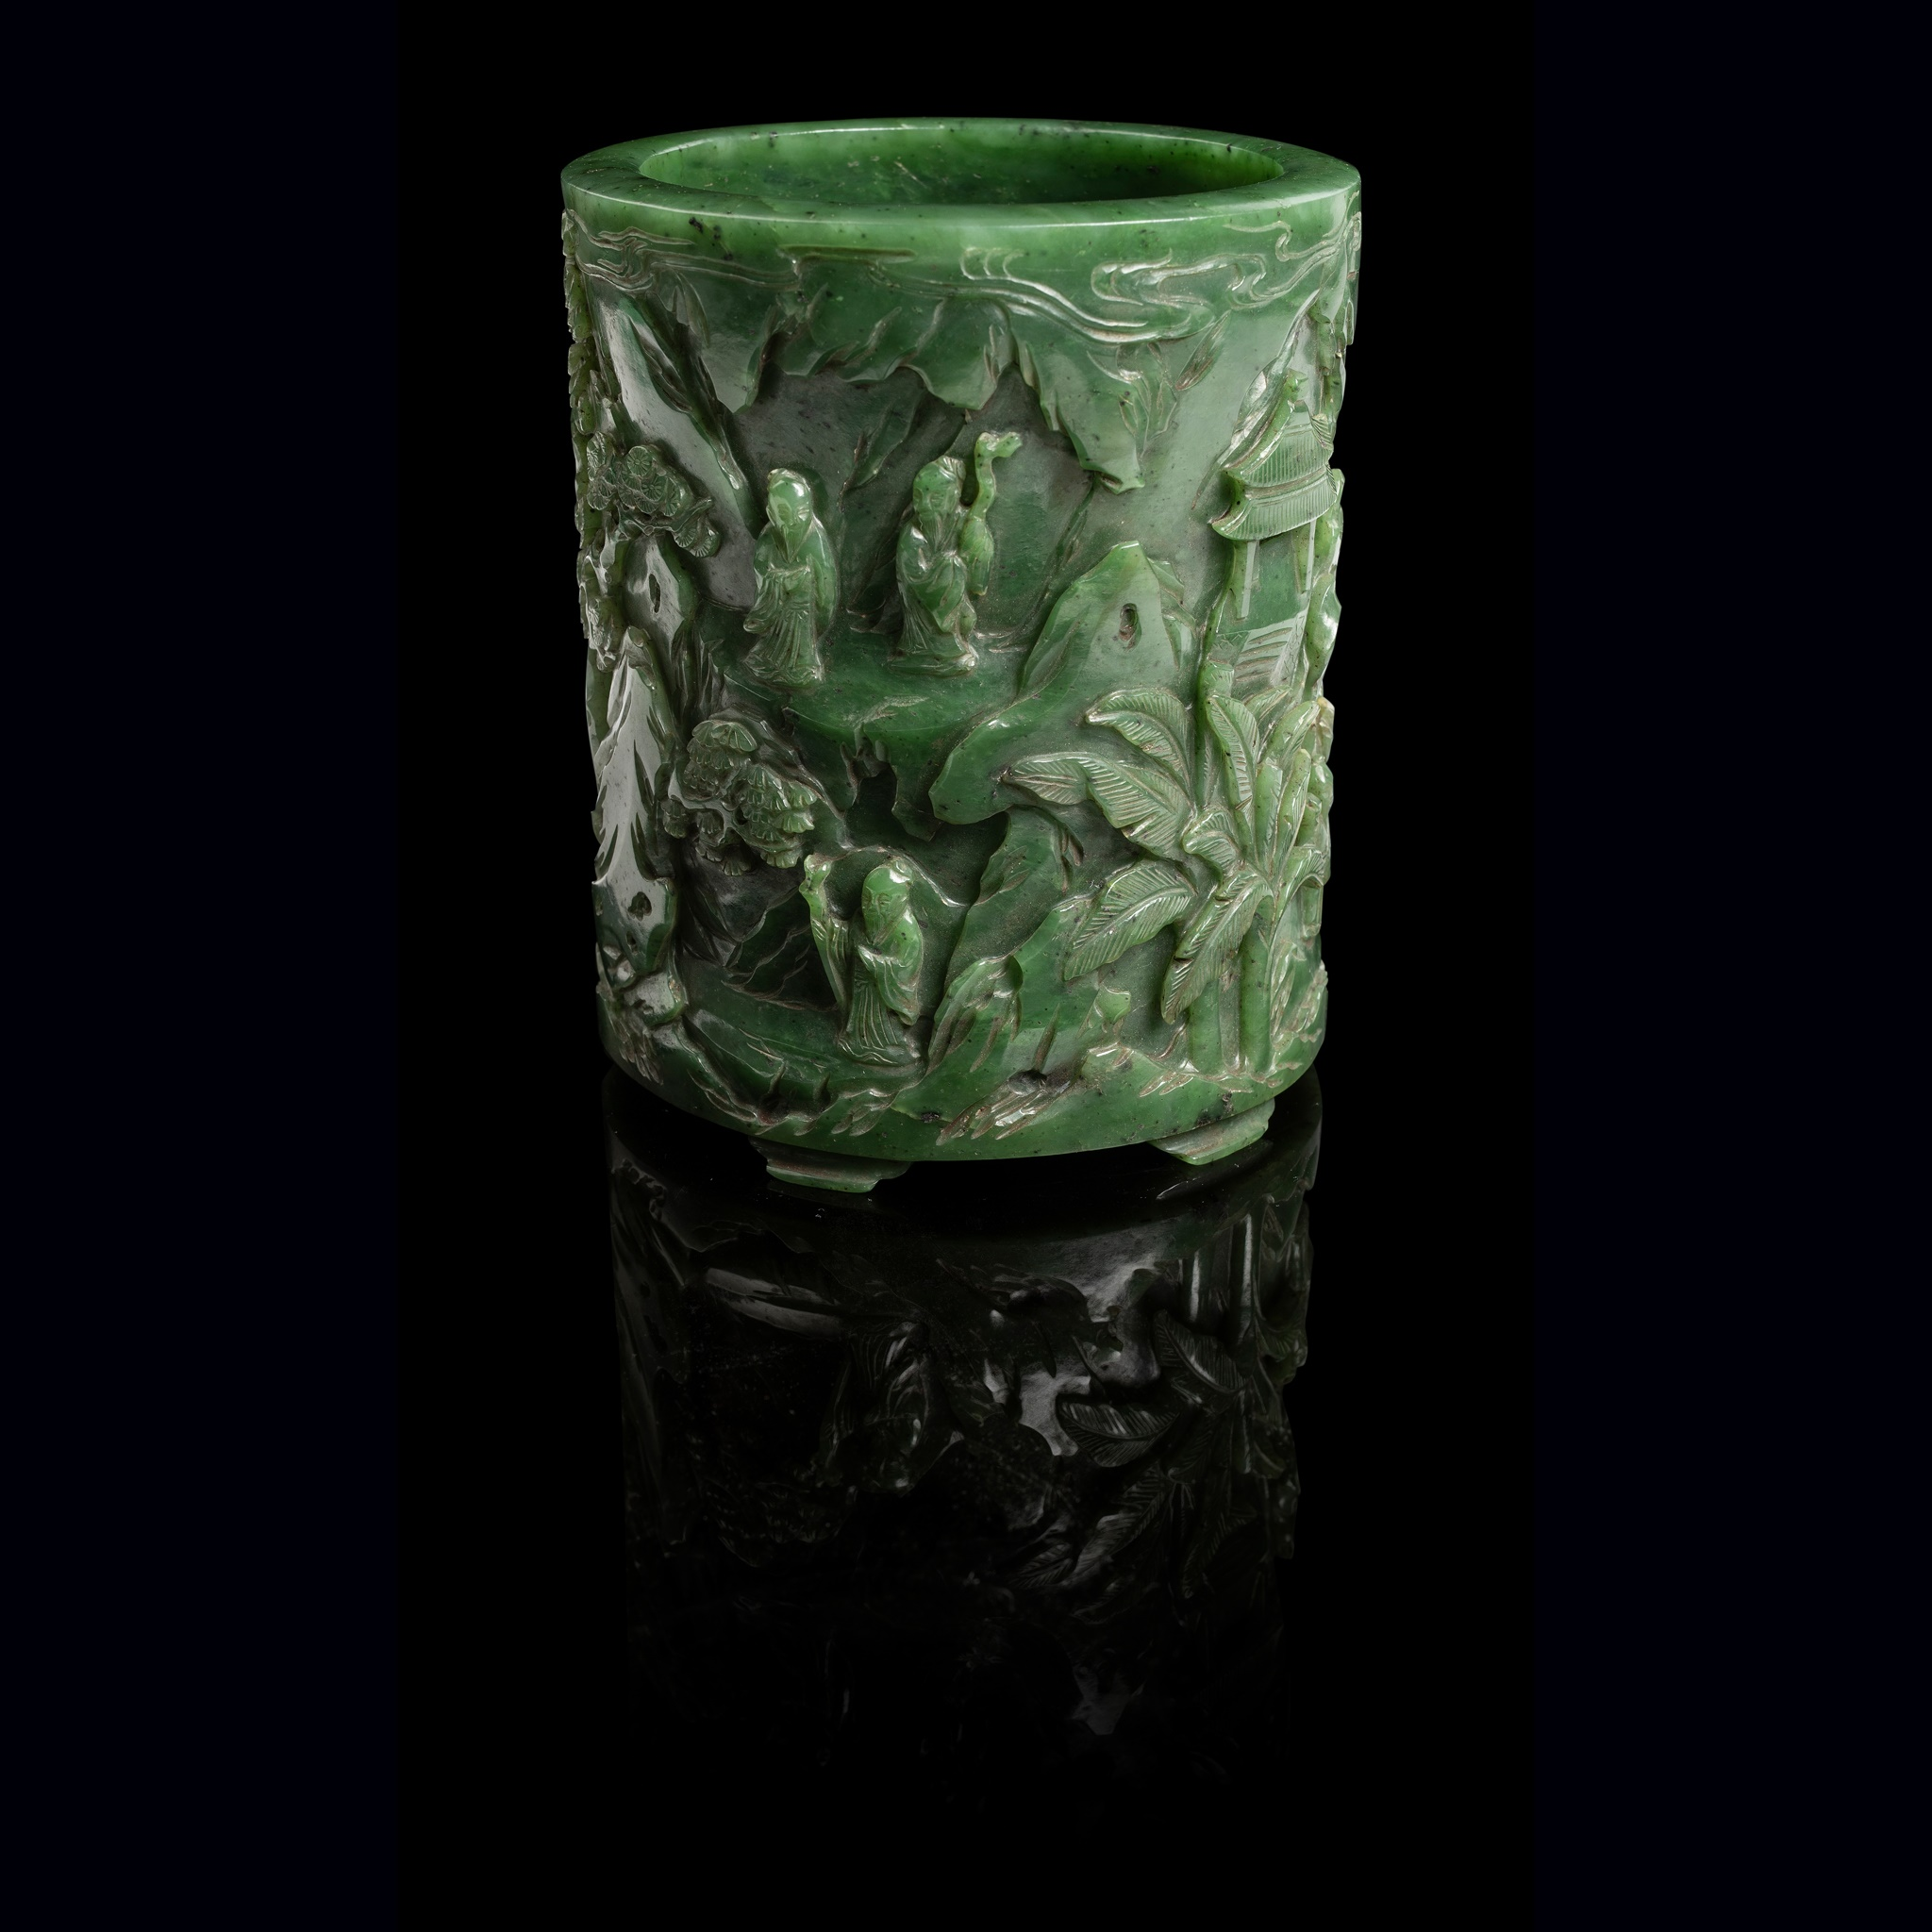 SPINACH-GREEN JADE 'SCHOLARS' BRUSH POT | QING DYNASTY, 19TH CENTURY, Provenance: Private French collection, 15.5cm high